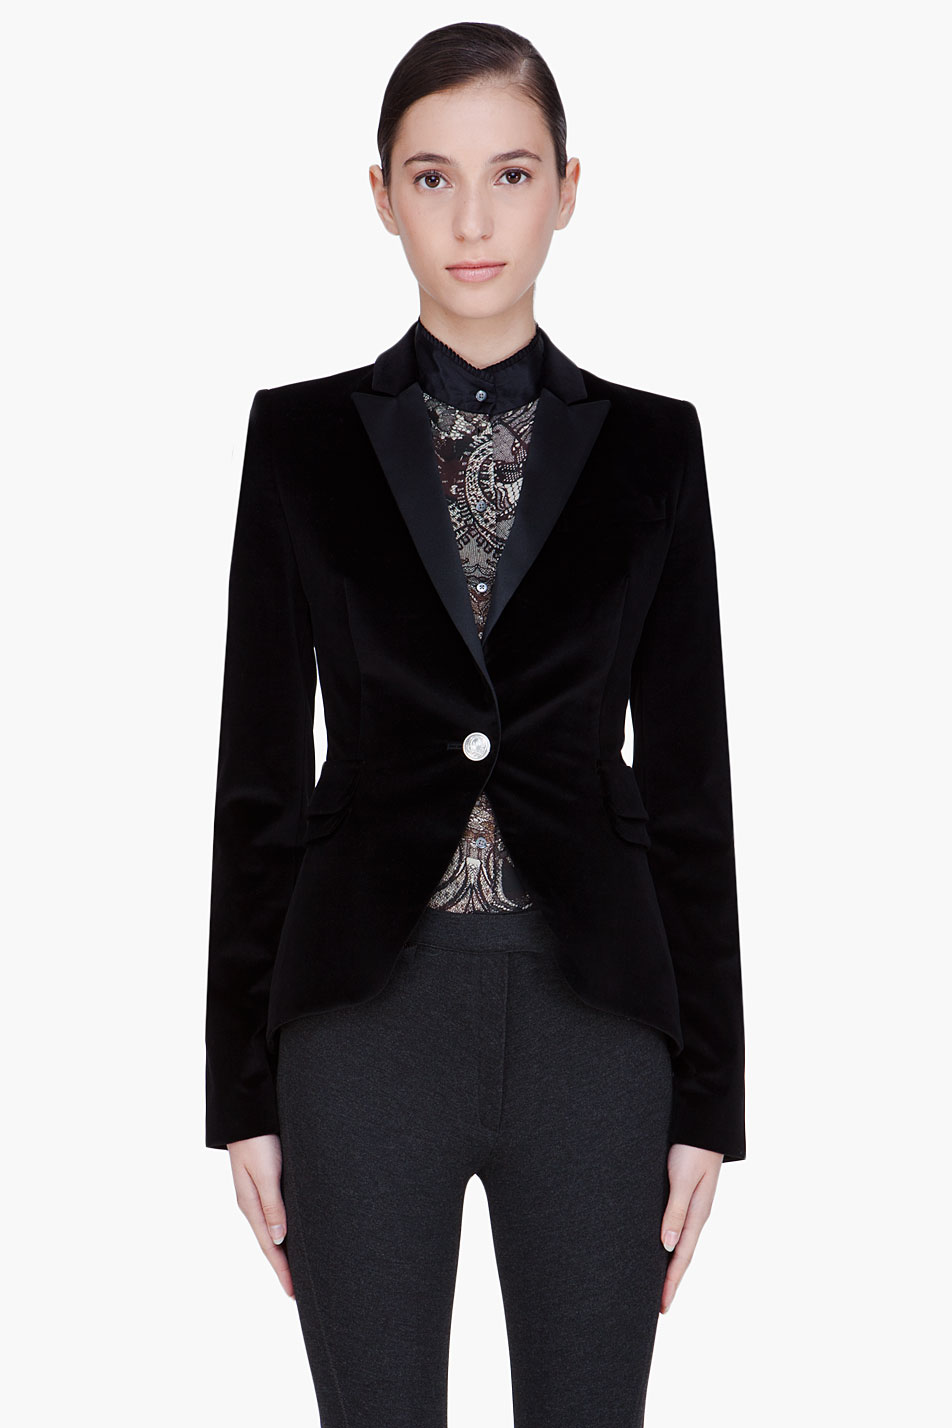 Mcq By Alexander Mcqueen Black Velvet Tuxedo Jacket In